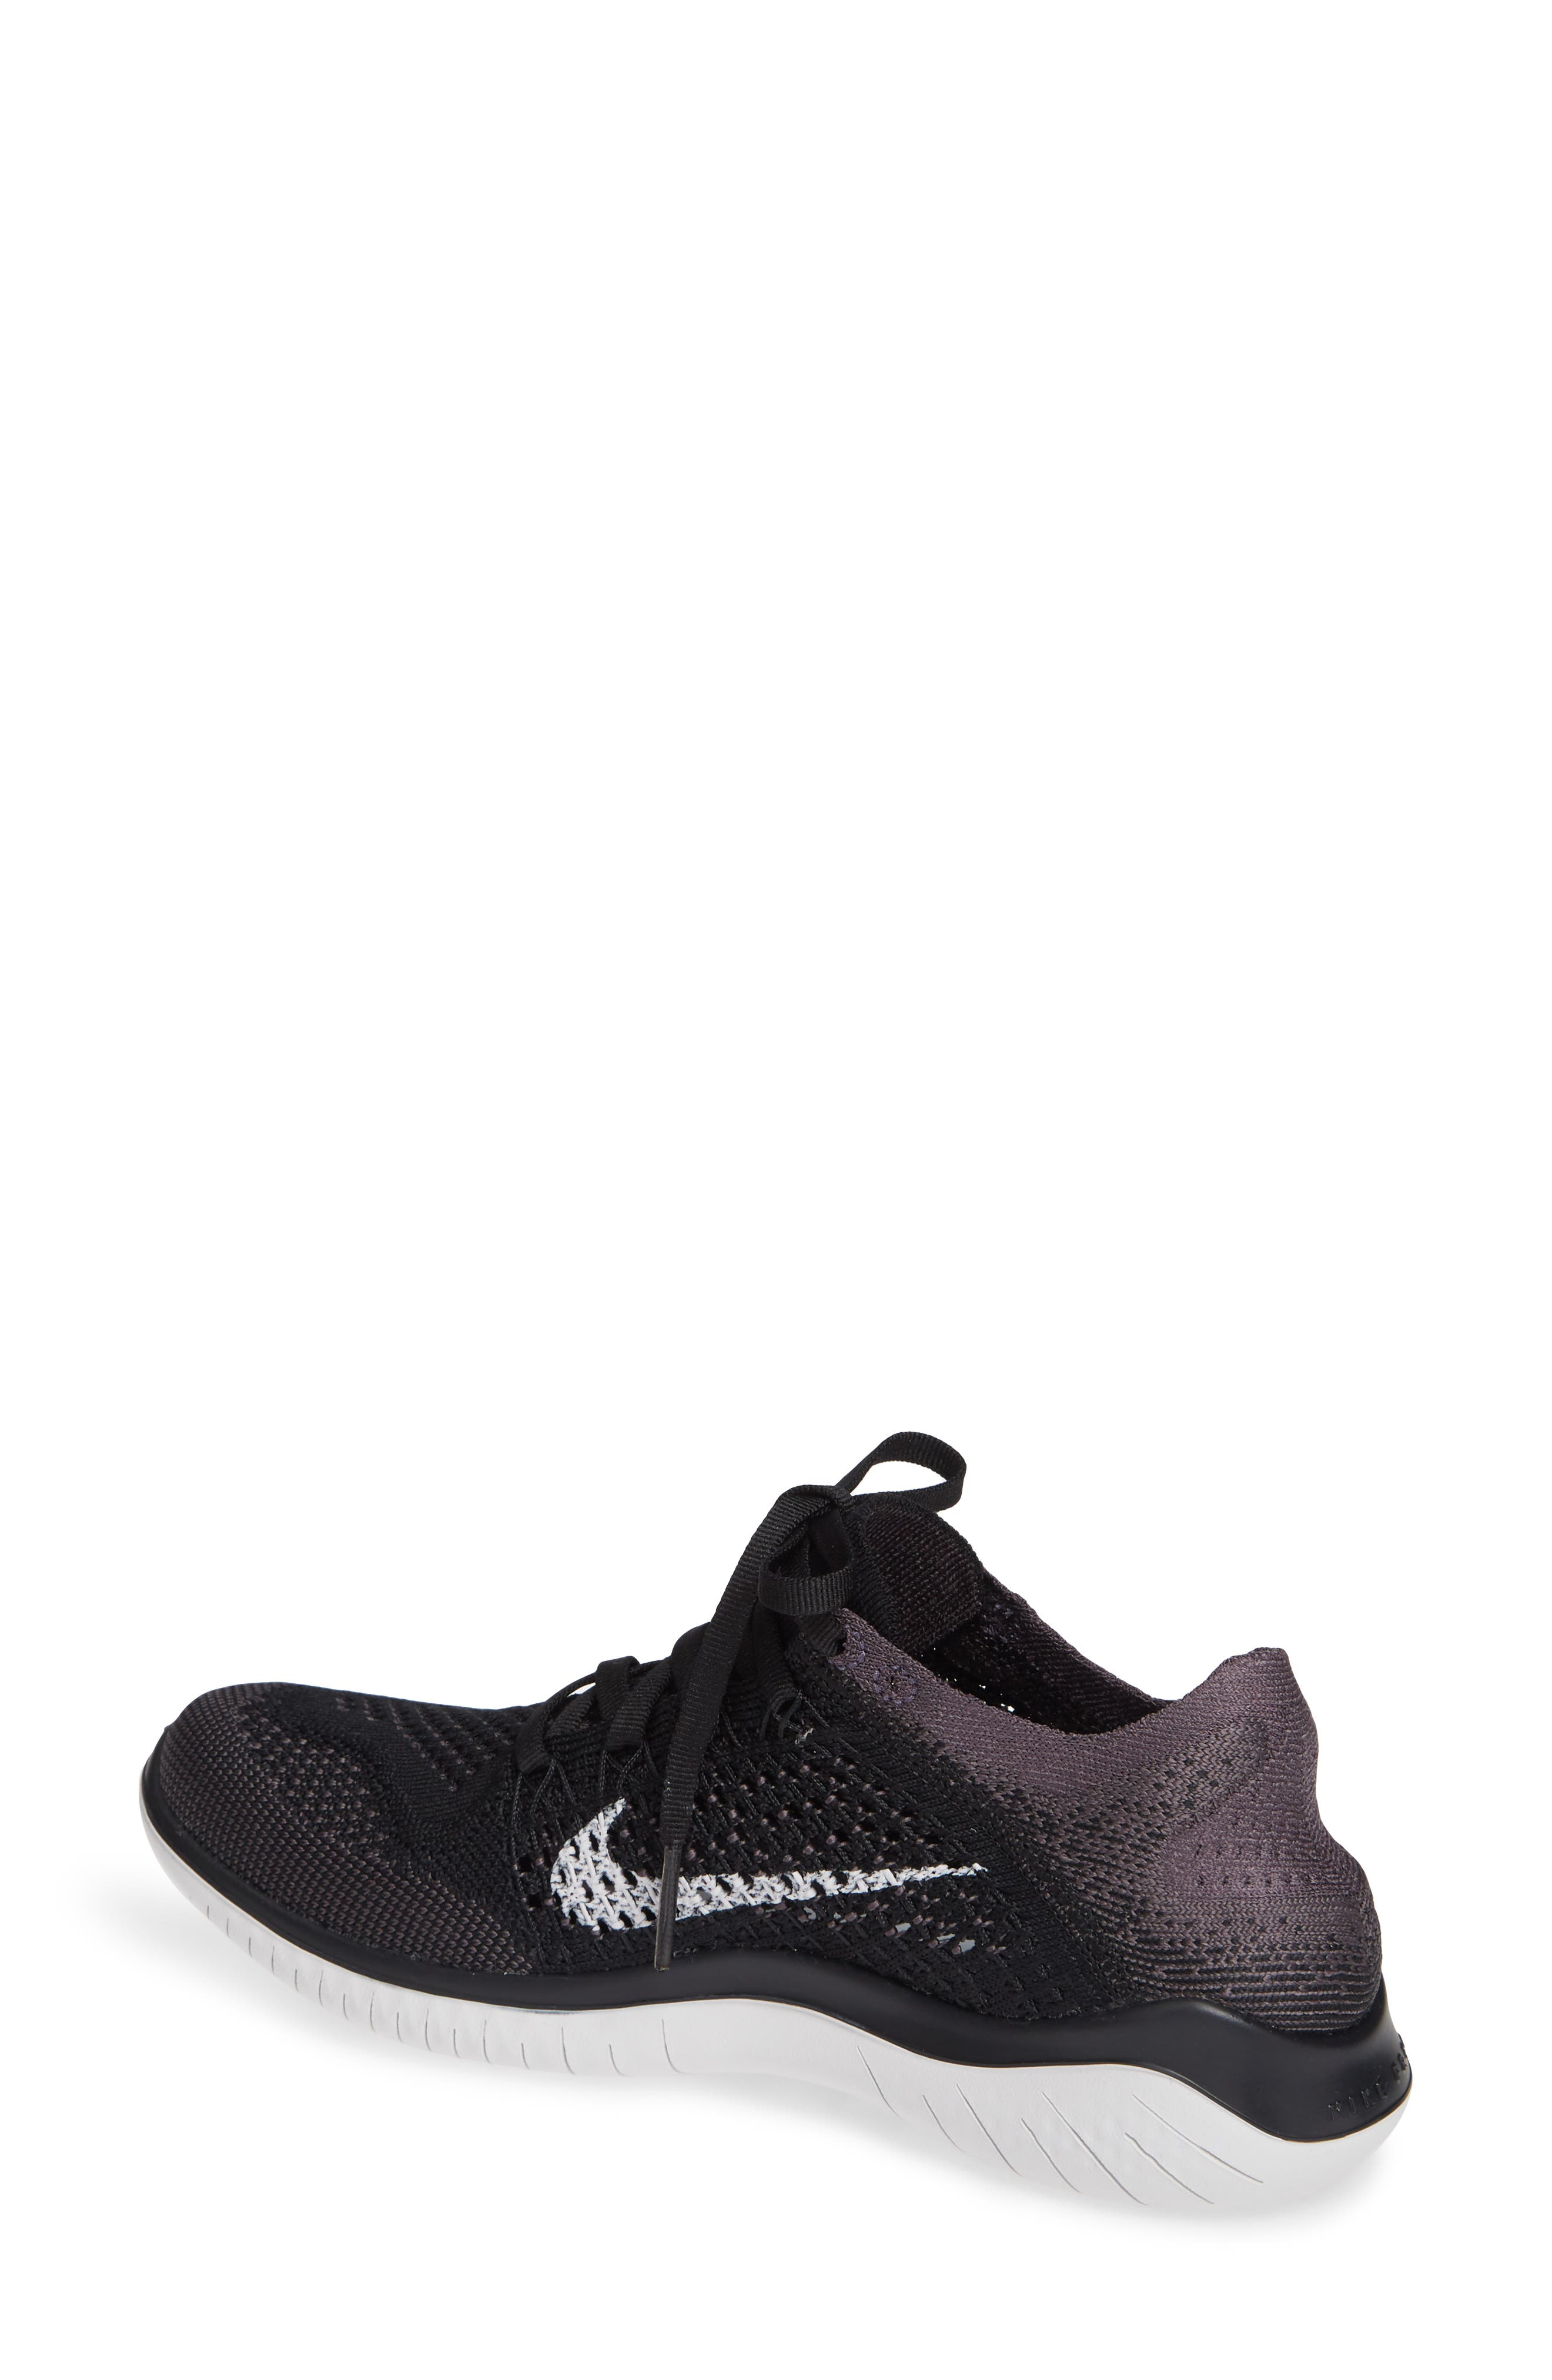 Free RN Flyknit 2018 Running Shoe,                             Alternate thumbnail 12, color,